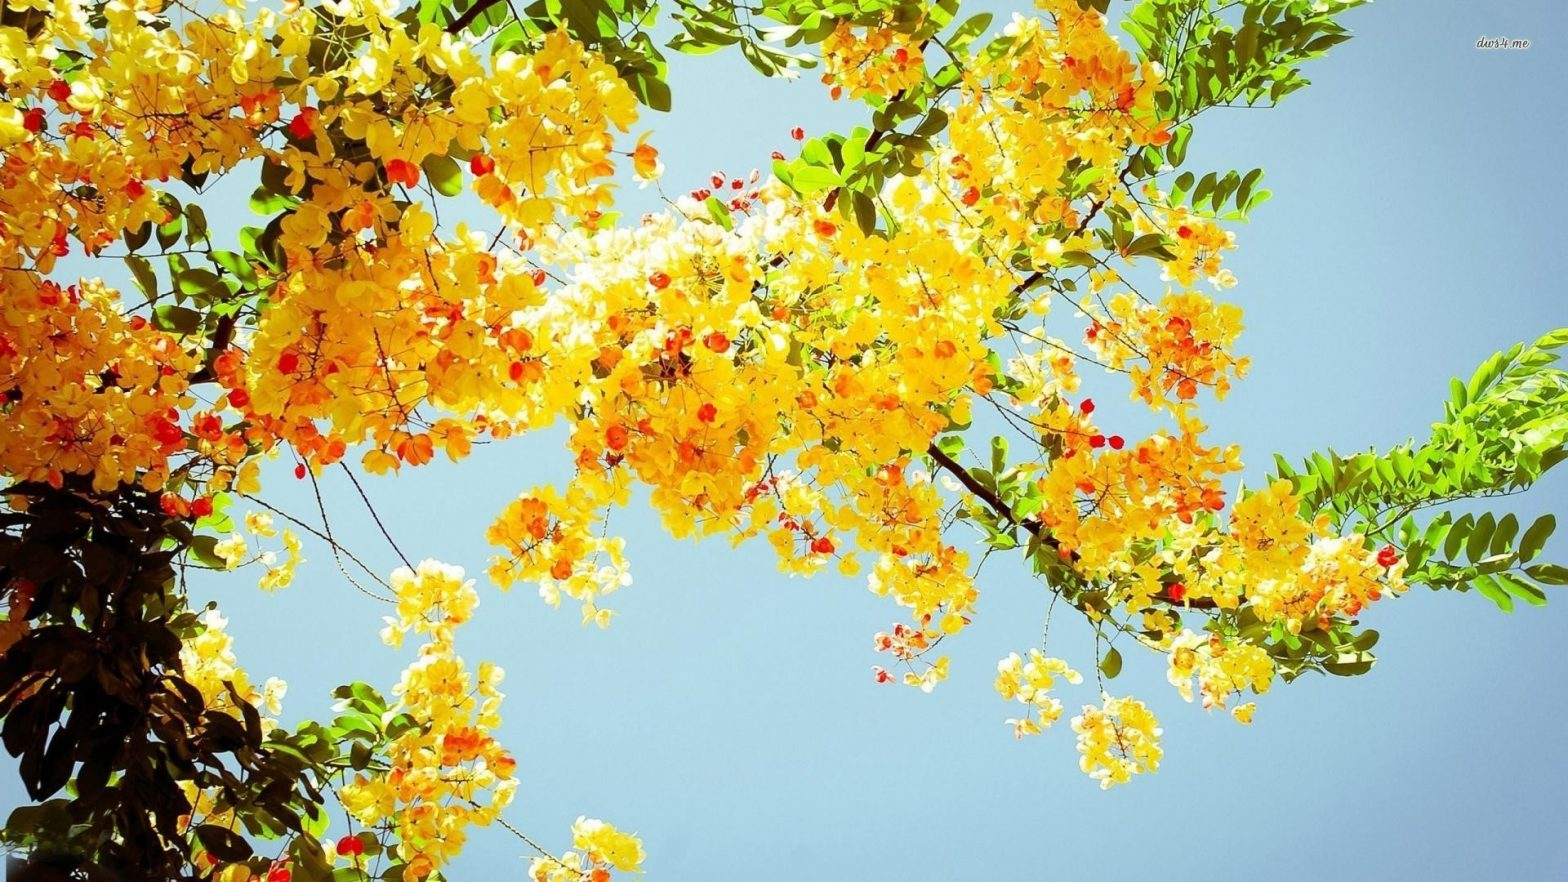 yellow flowers amidst the sky